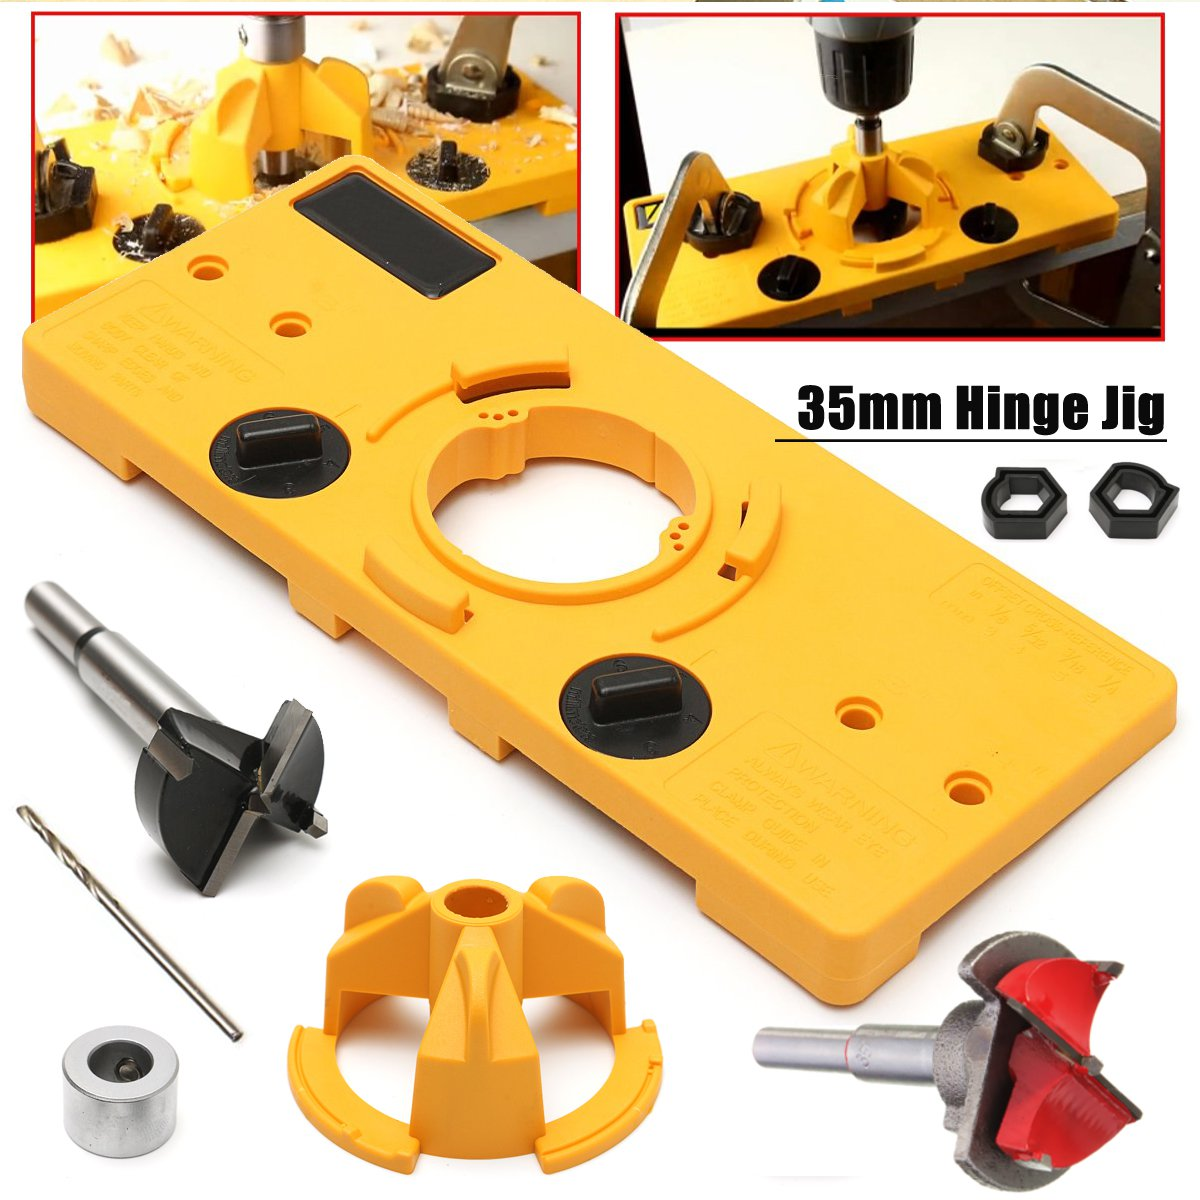 35mm Hinge Drilling Jig +35MM Carbide Tipped Hinge Cutter Boring Drill + 35mm Forstner Bit woodworking tool drill bits 1pc cemented carbide 35mm hole saw woodworking core drill bit hinge cutter boring forstner bit tipped drilling tool high quality